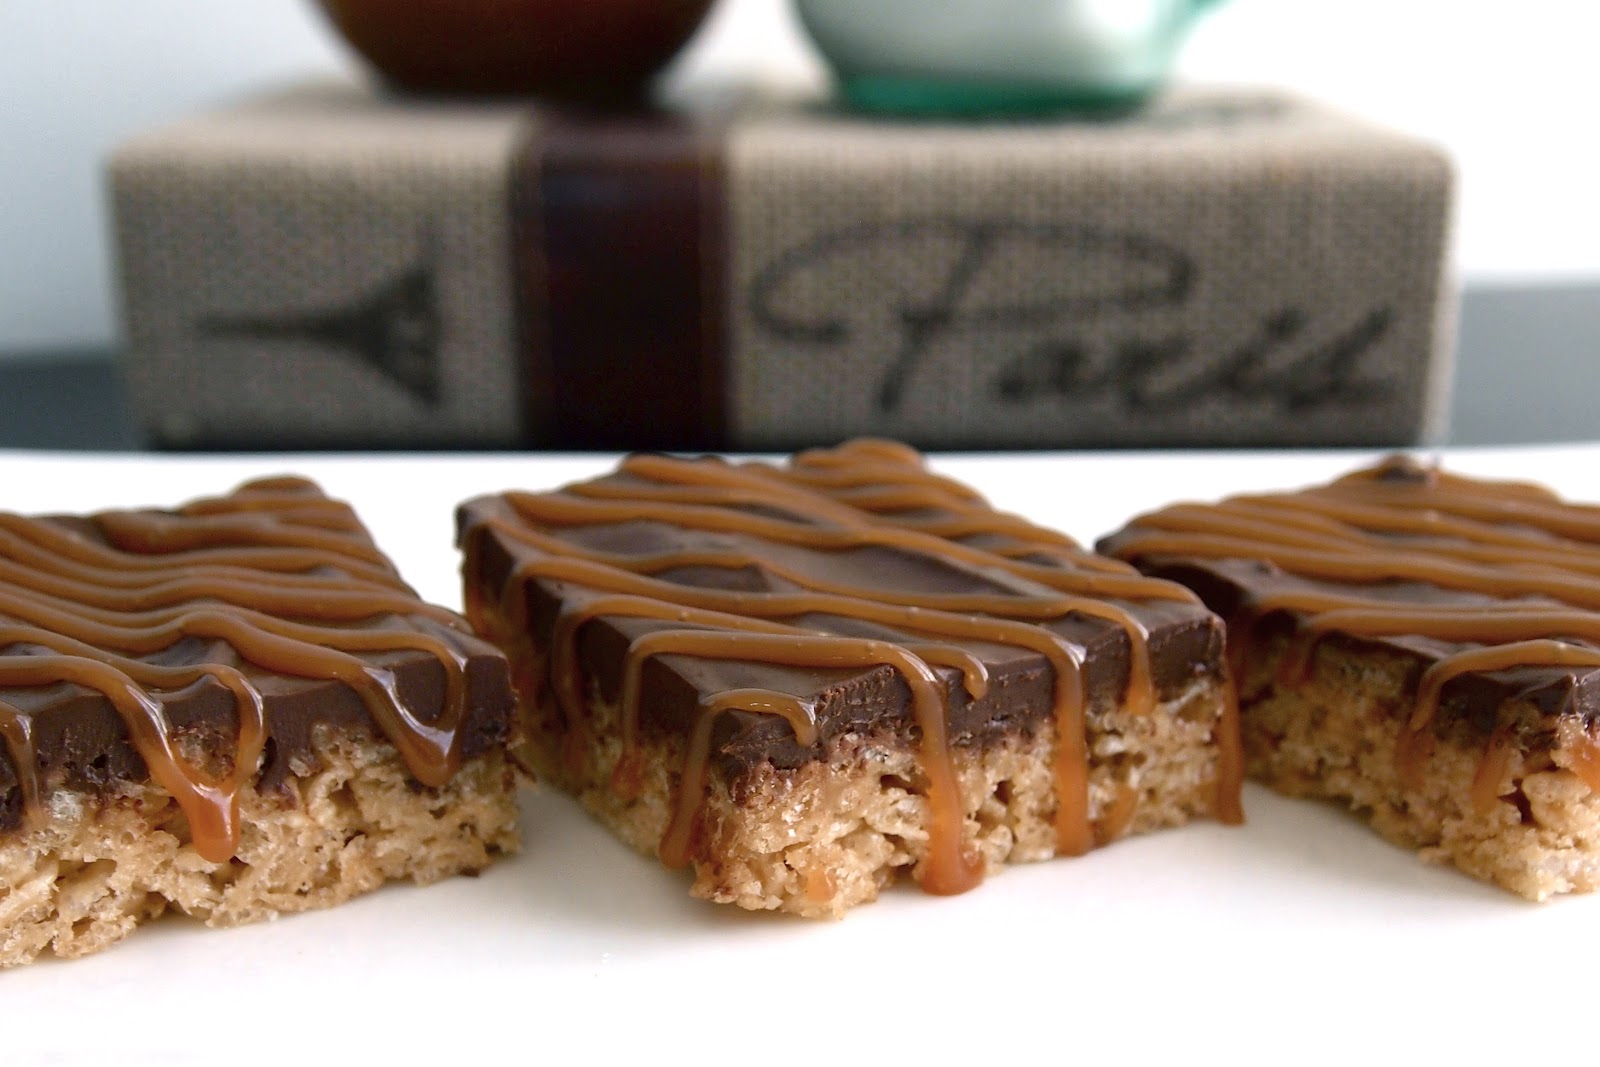 Rice Krispie Treats With Chocolate, Toasted Walnuts And Caramel - The ...